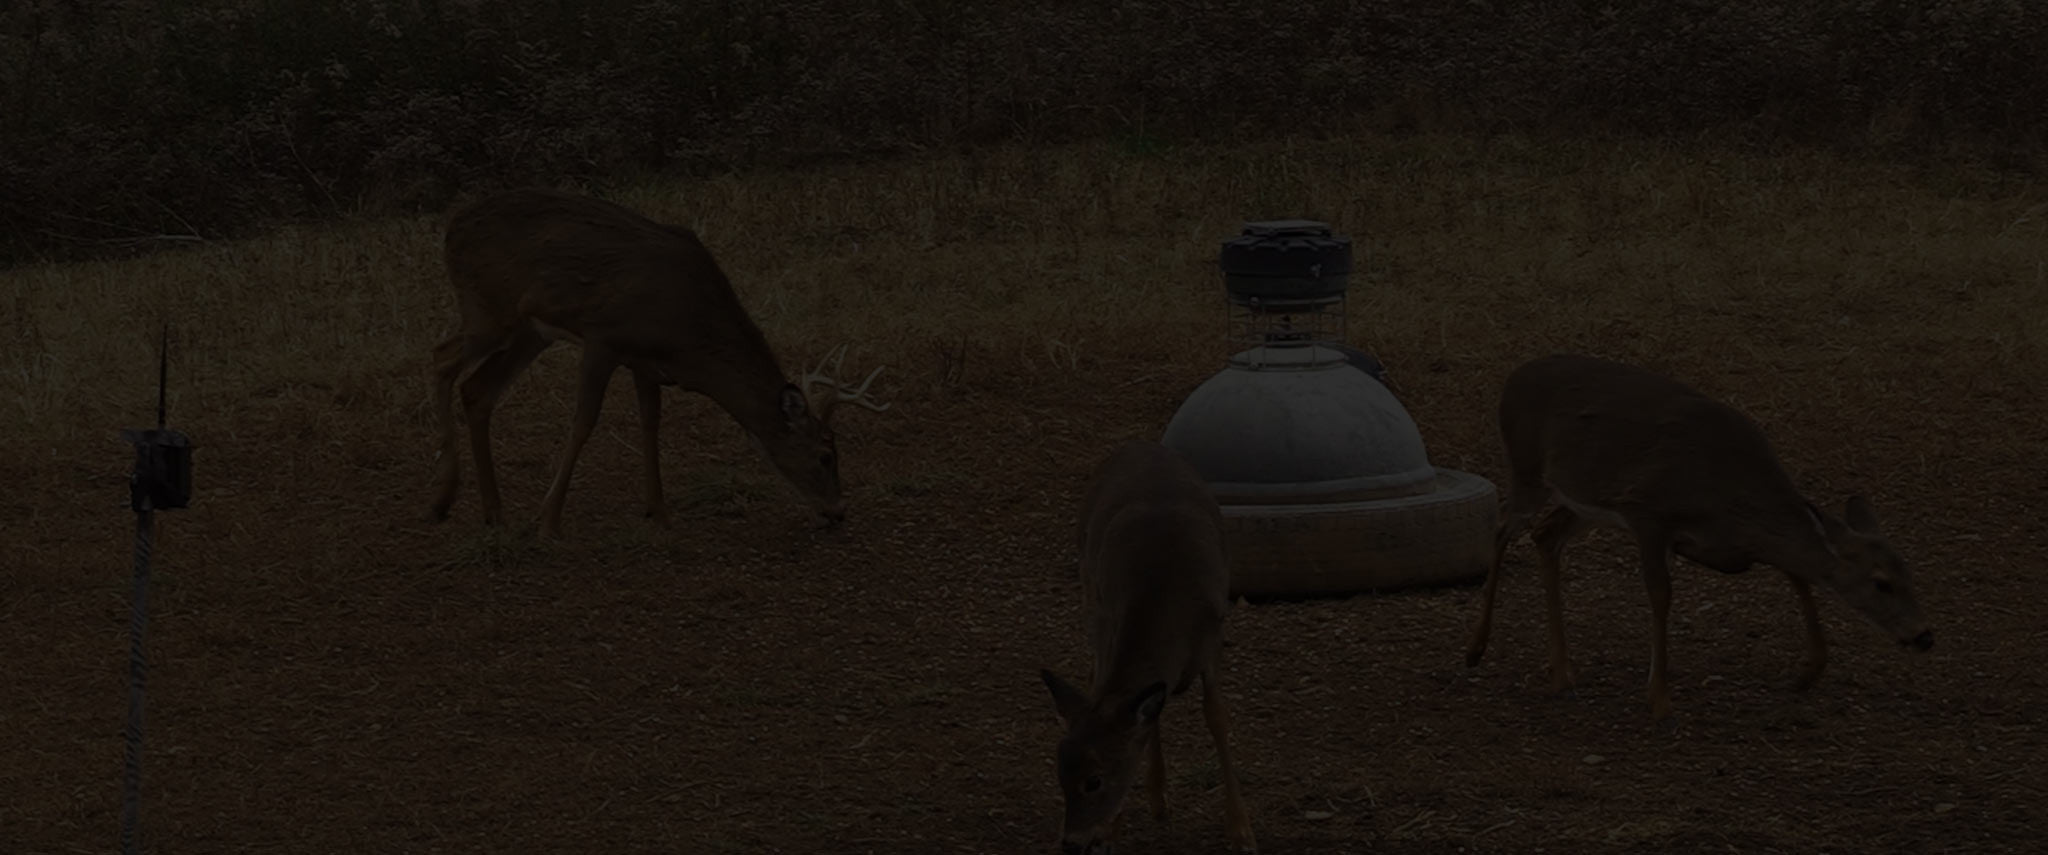 Deer eating at capsule feeder